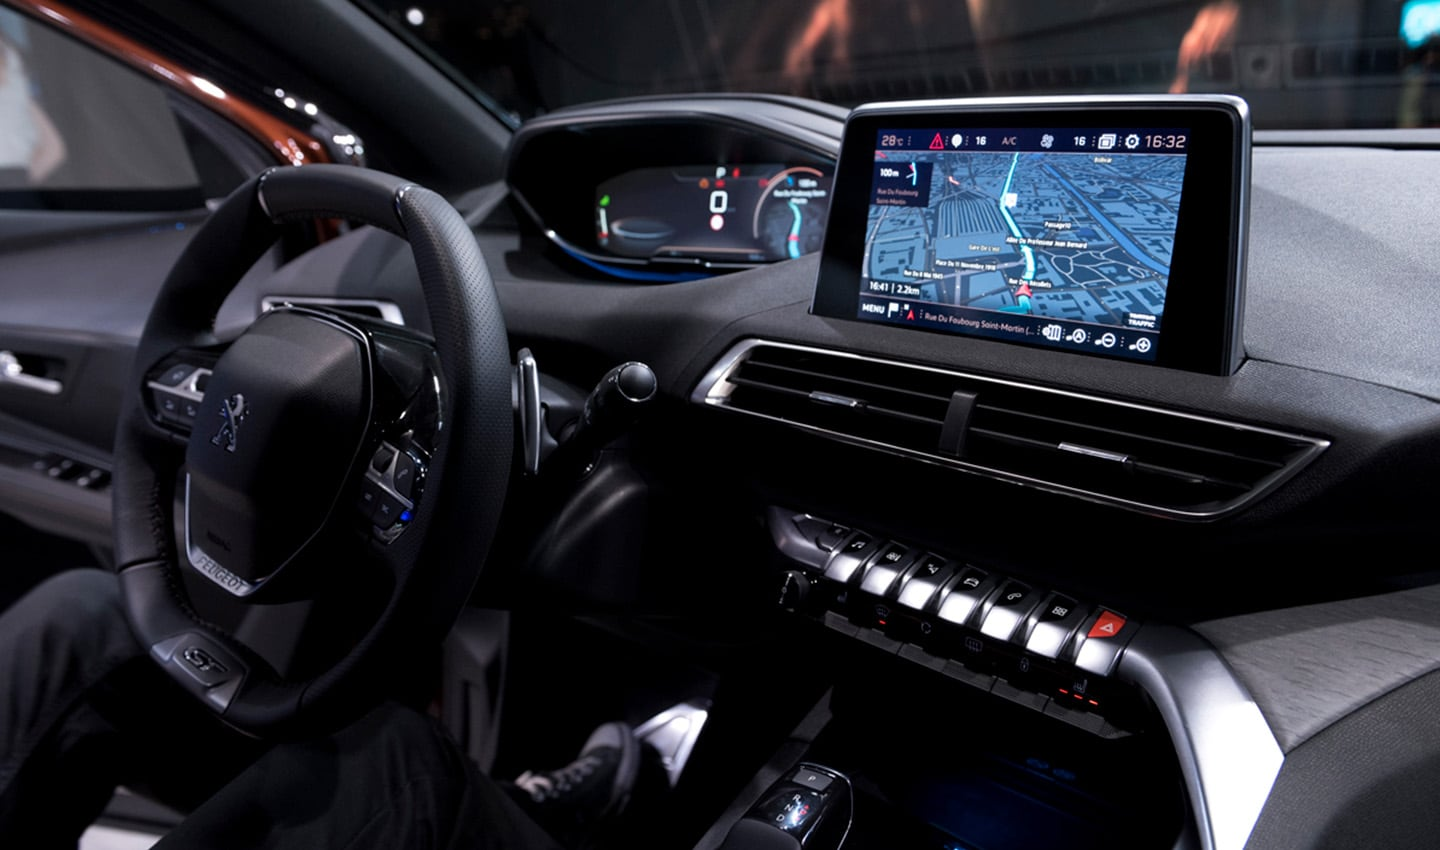 The infotainment system in new Peugeots features a cluster screen and central screen.